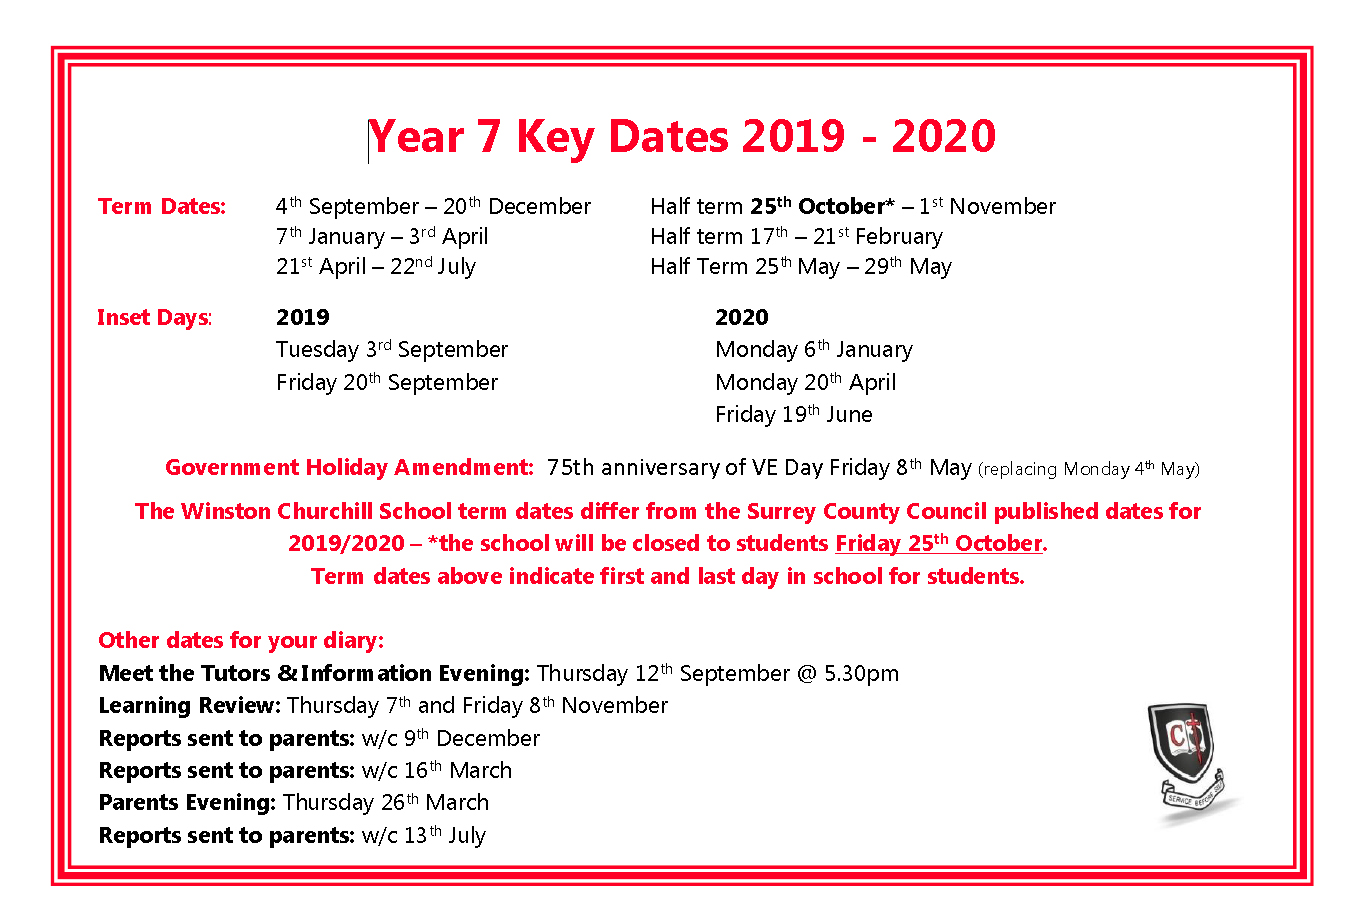 Year 7 Key Dates